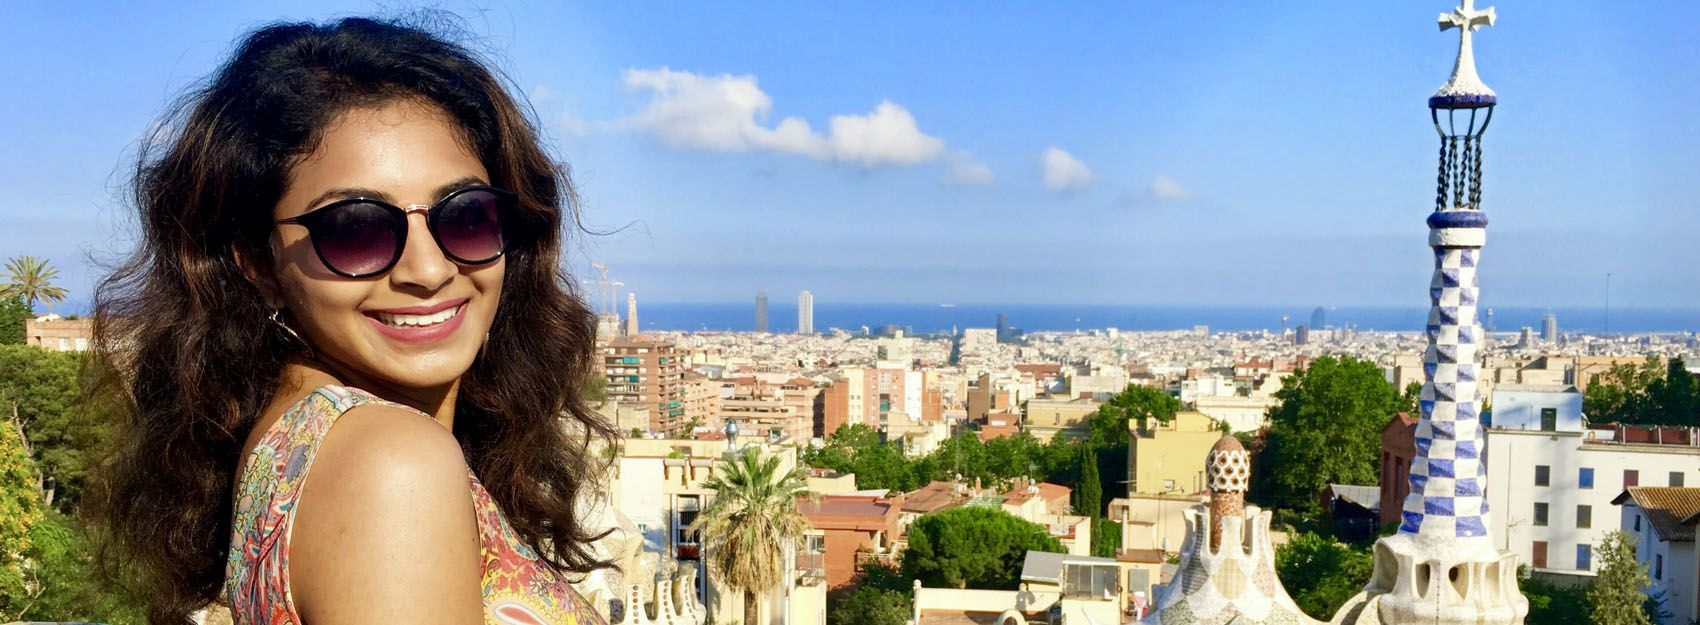 Student participating in an internship in Barcelona smiling over skyline